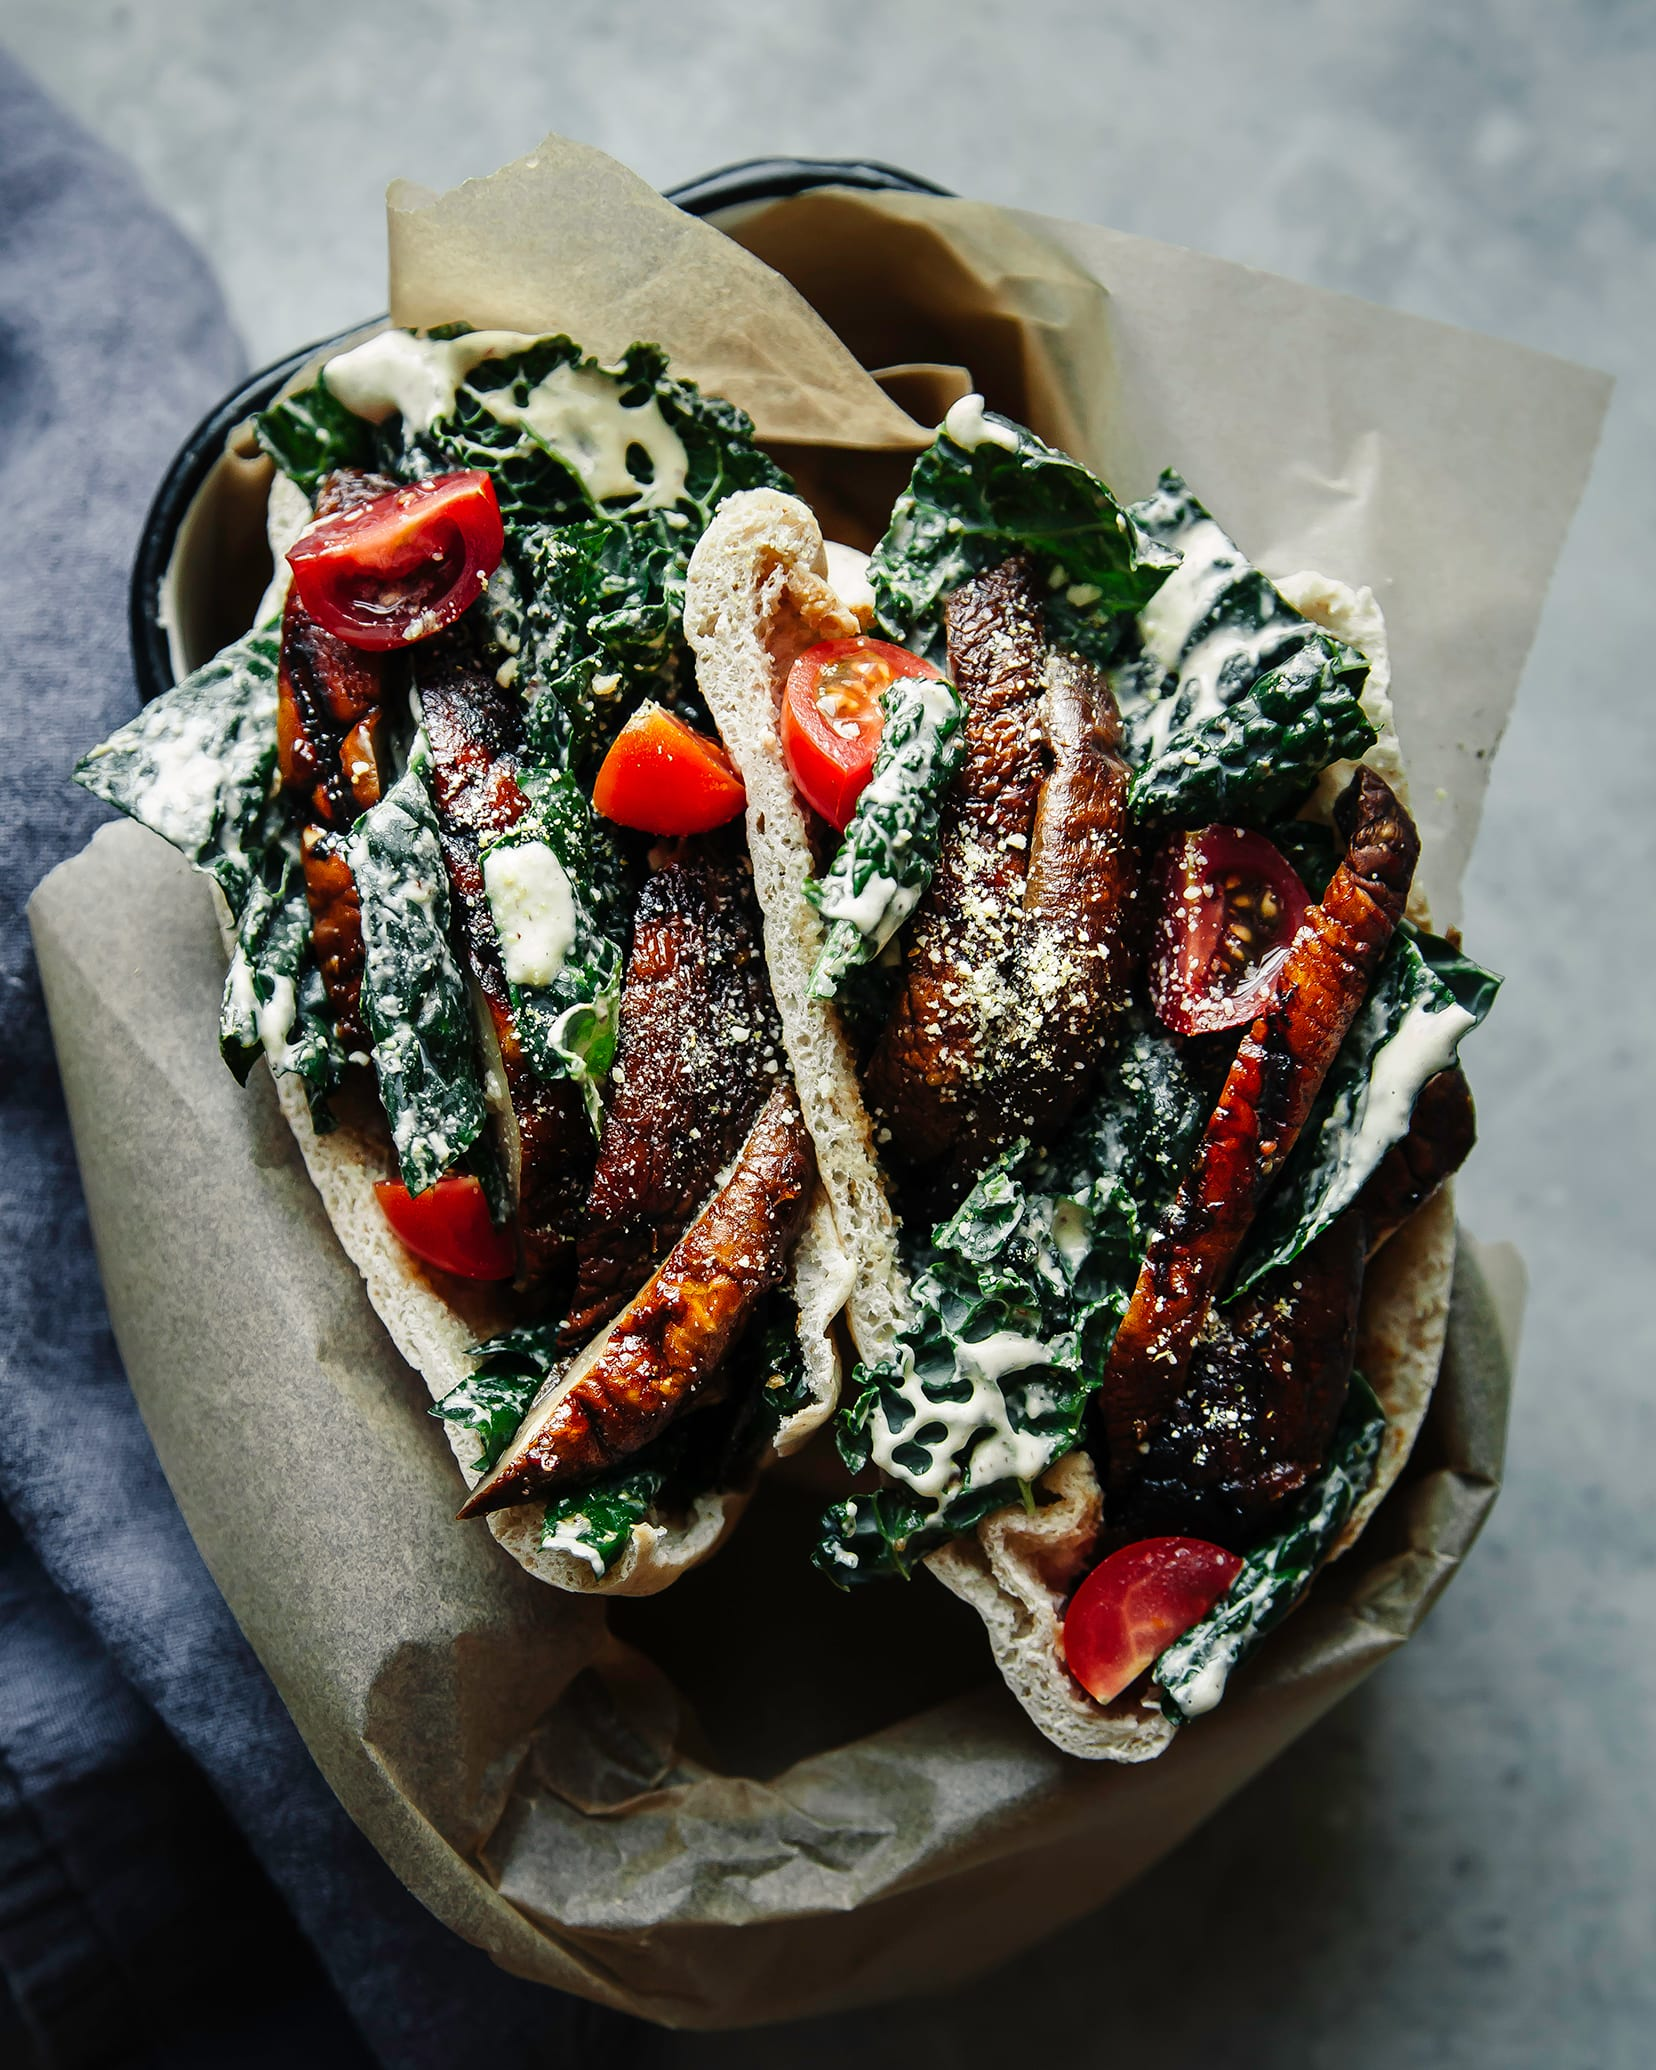 An up close, overhead shot of two pitas stuffed with creamy-dressed kale, sliced grilled mushrooms and quartered cherry tomatoes. The pitas are inside a small rectangular dish on top of a blue-ish grey background.